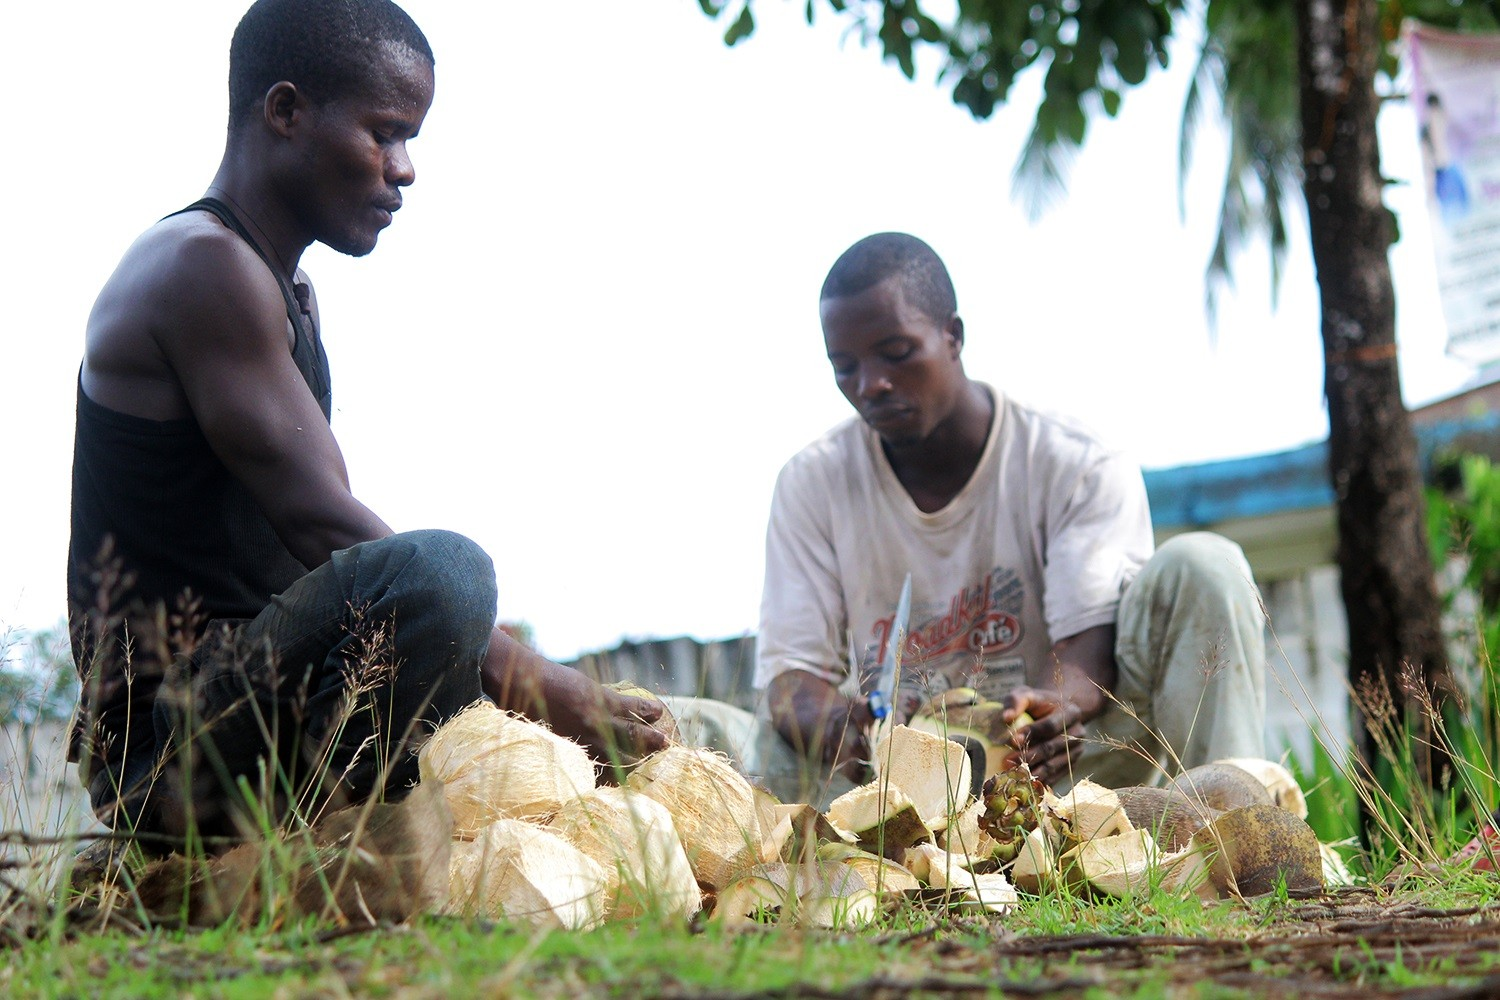 Making-coconut-oil-Liberia-photo